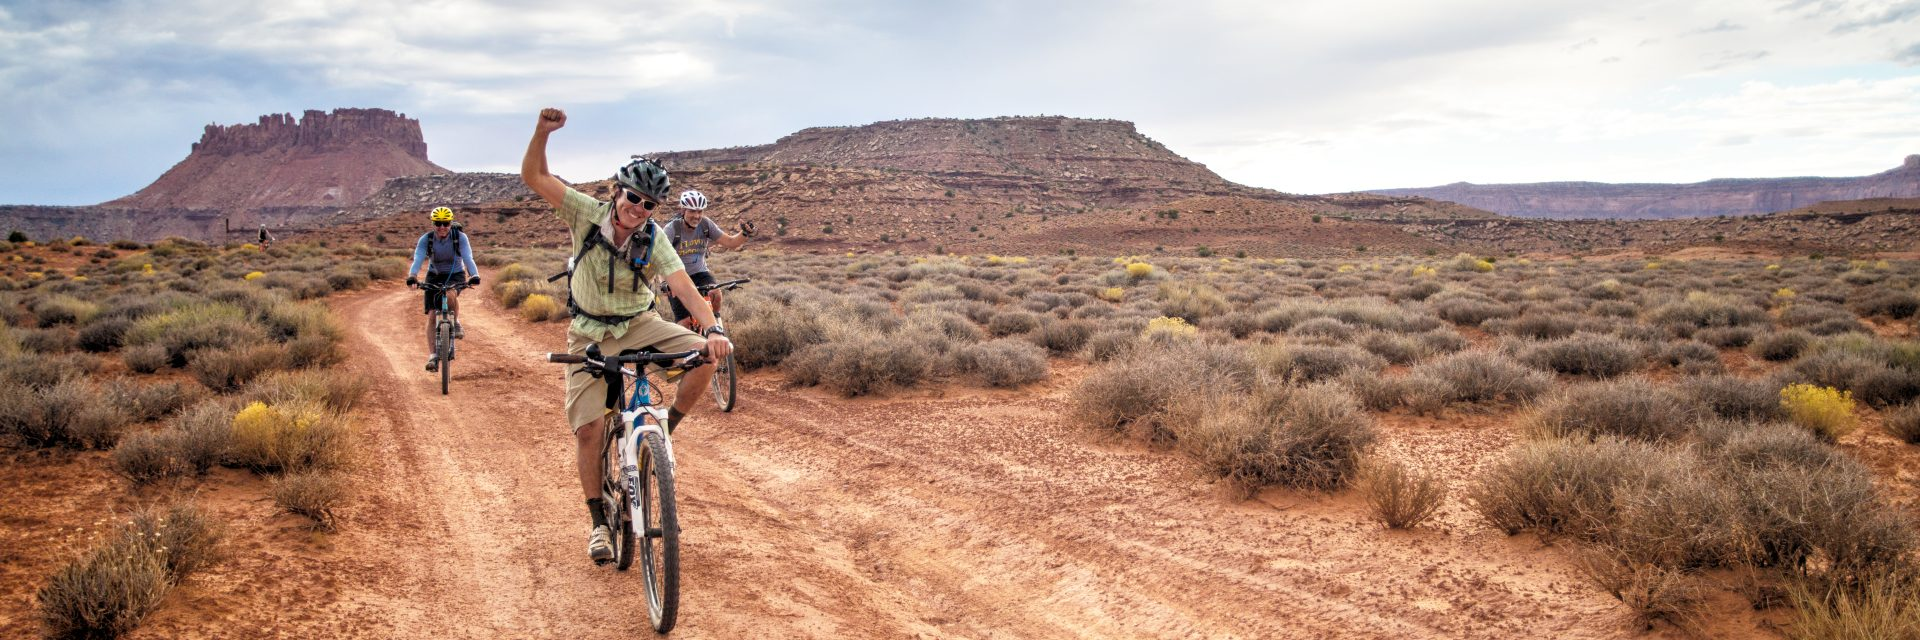 Cheers go up at the sight of camp, after a full day's ride into The Maze District, Canyonlands National Park on this guided mountain bike tour